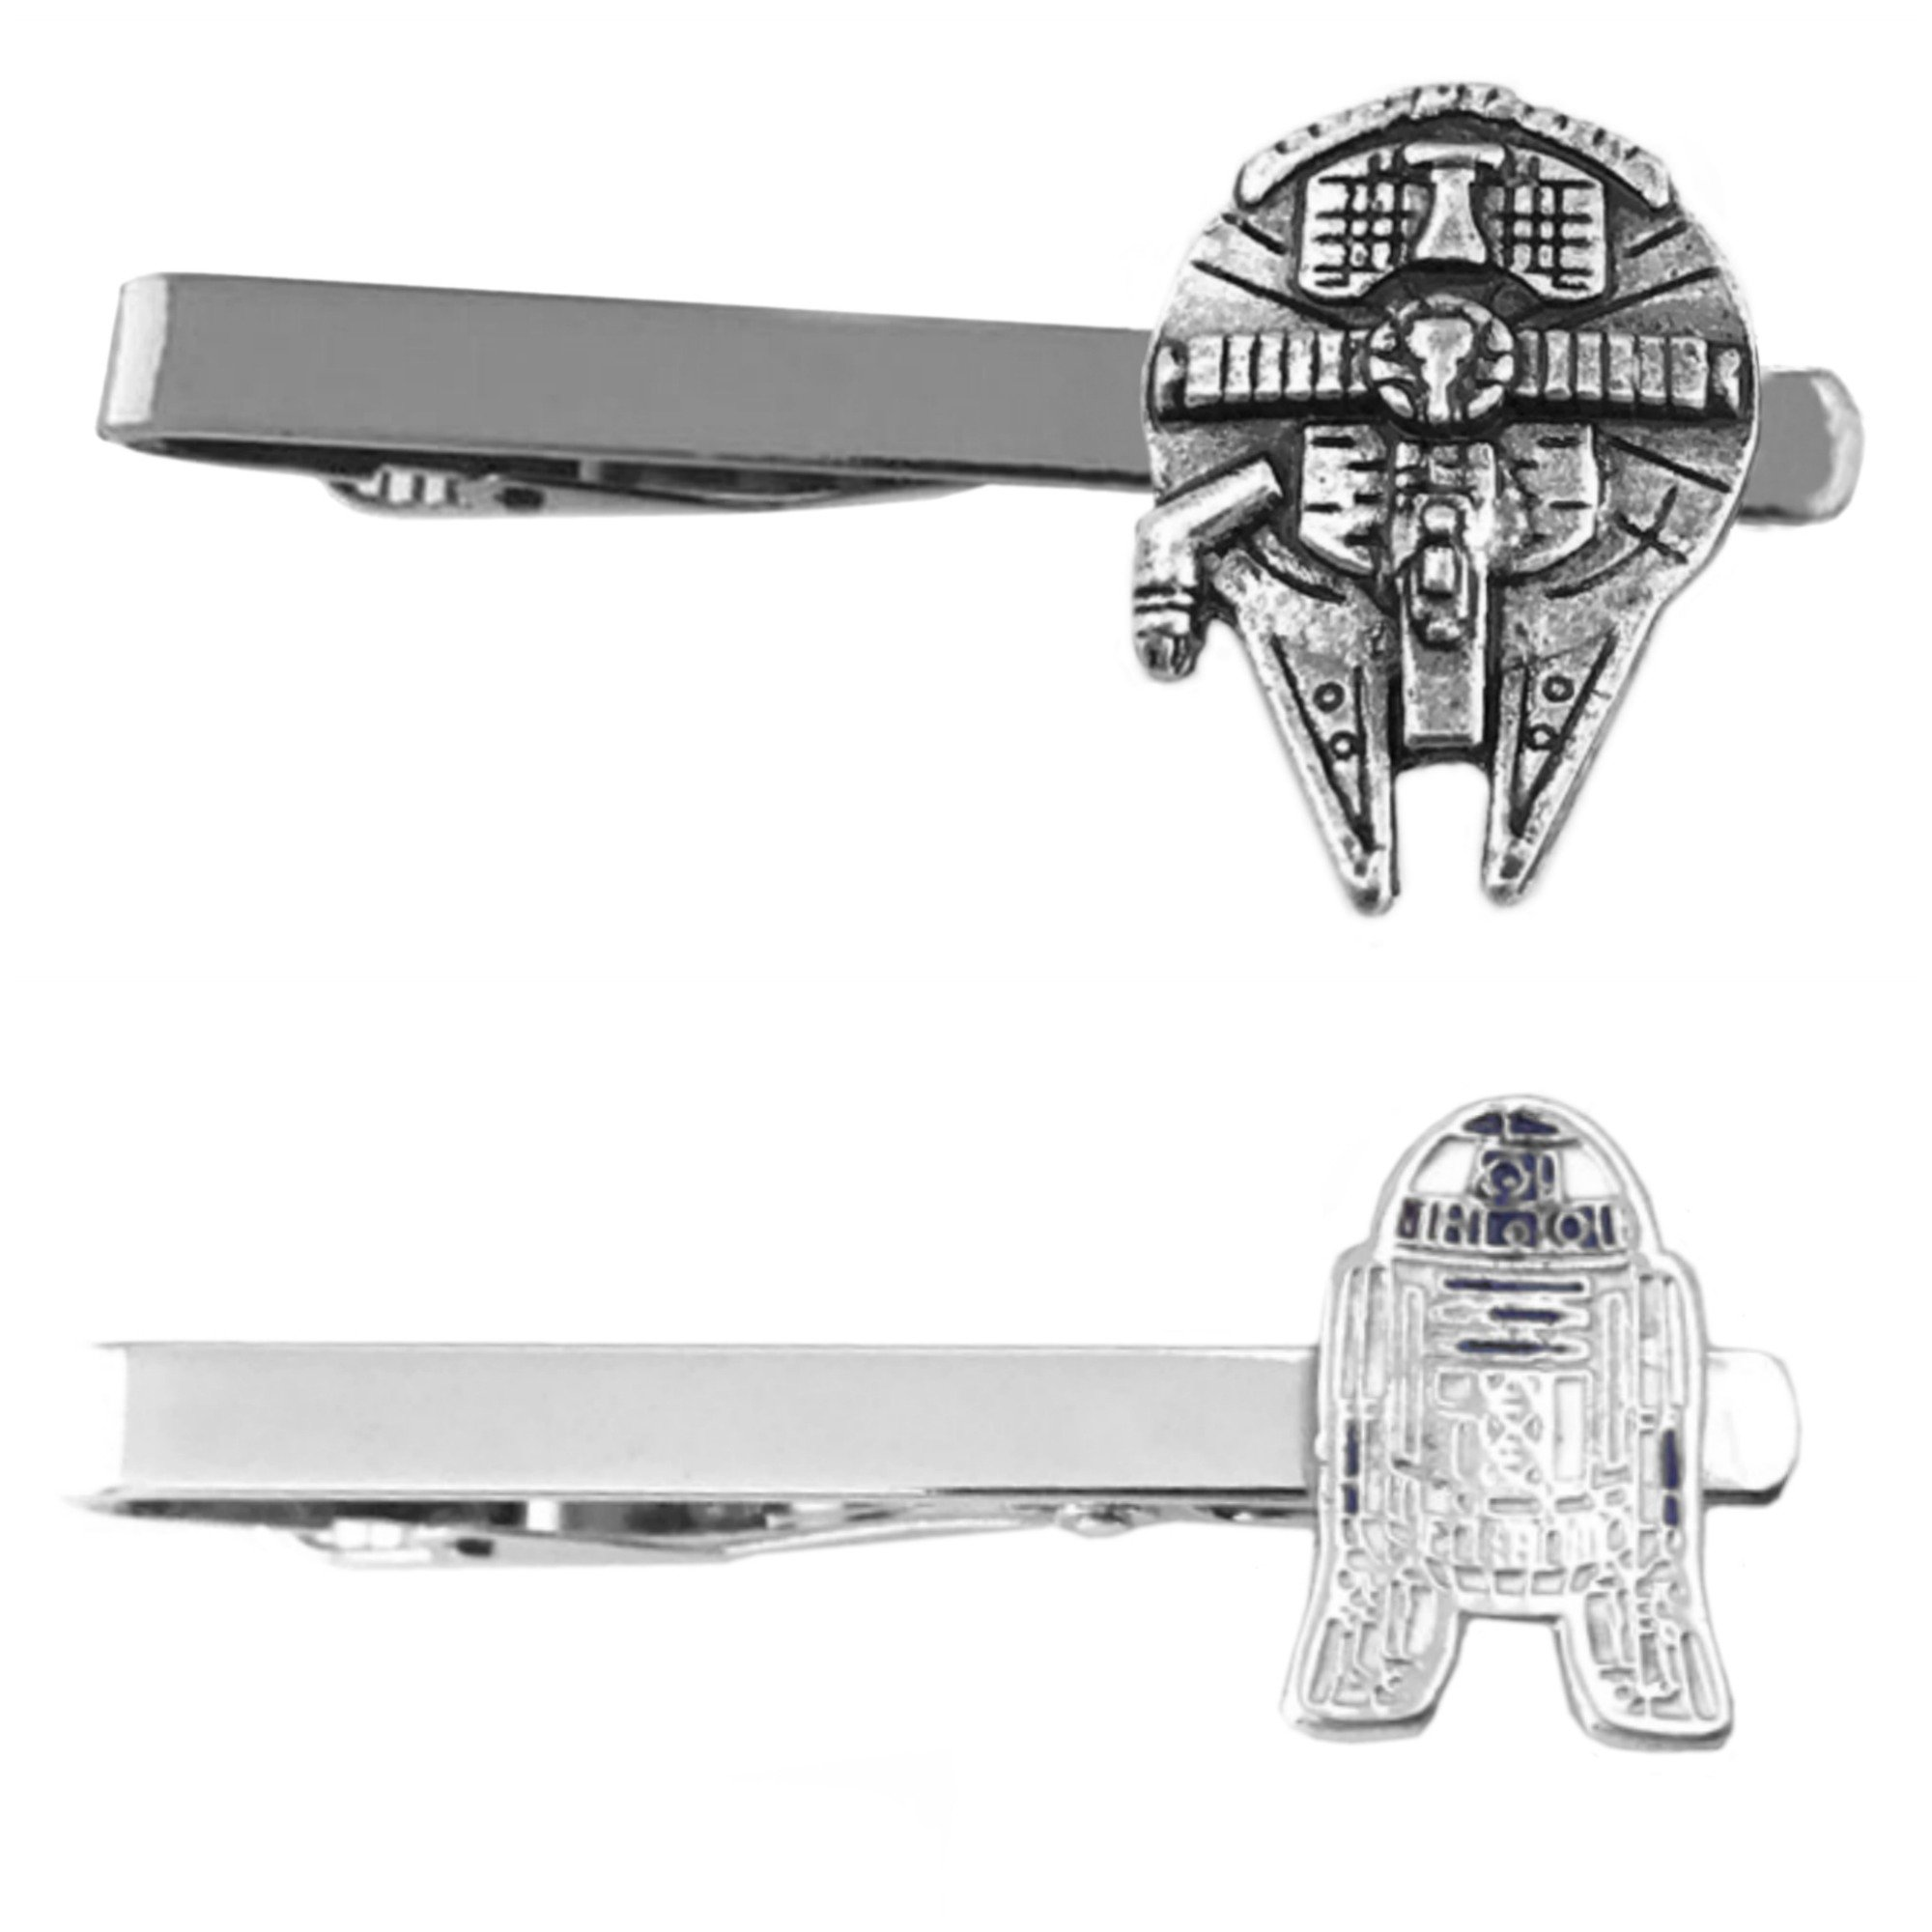 Outlander Star Wars - Millenium Falcon & R2-D2 Flat - Tiebar Tie Clasp Set of 2 Wedding Superhero Logo w/Gift Box